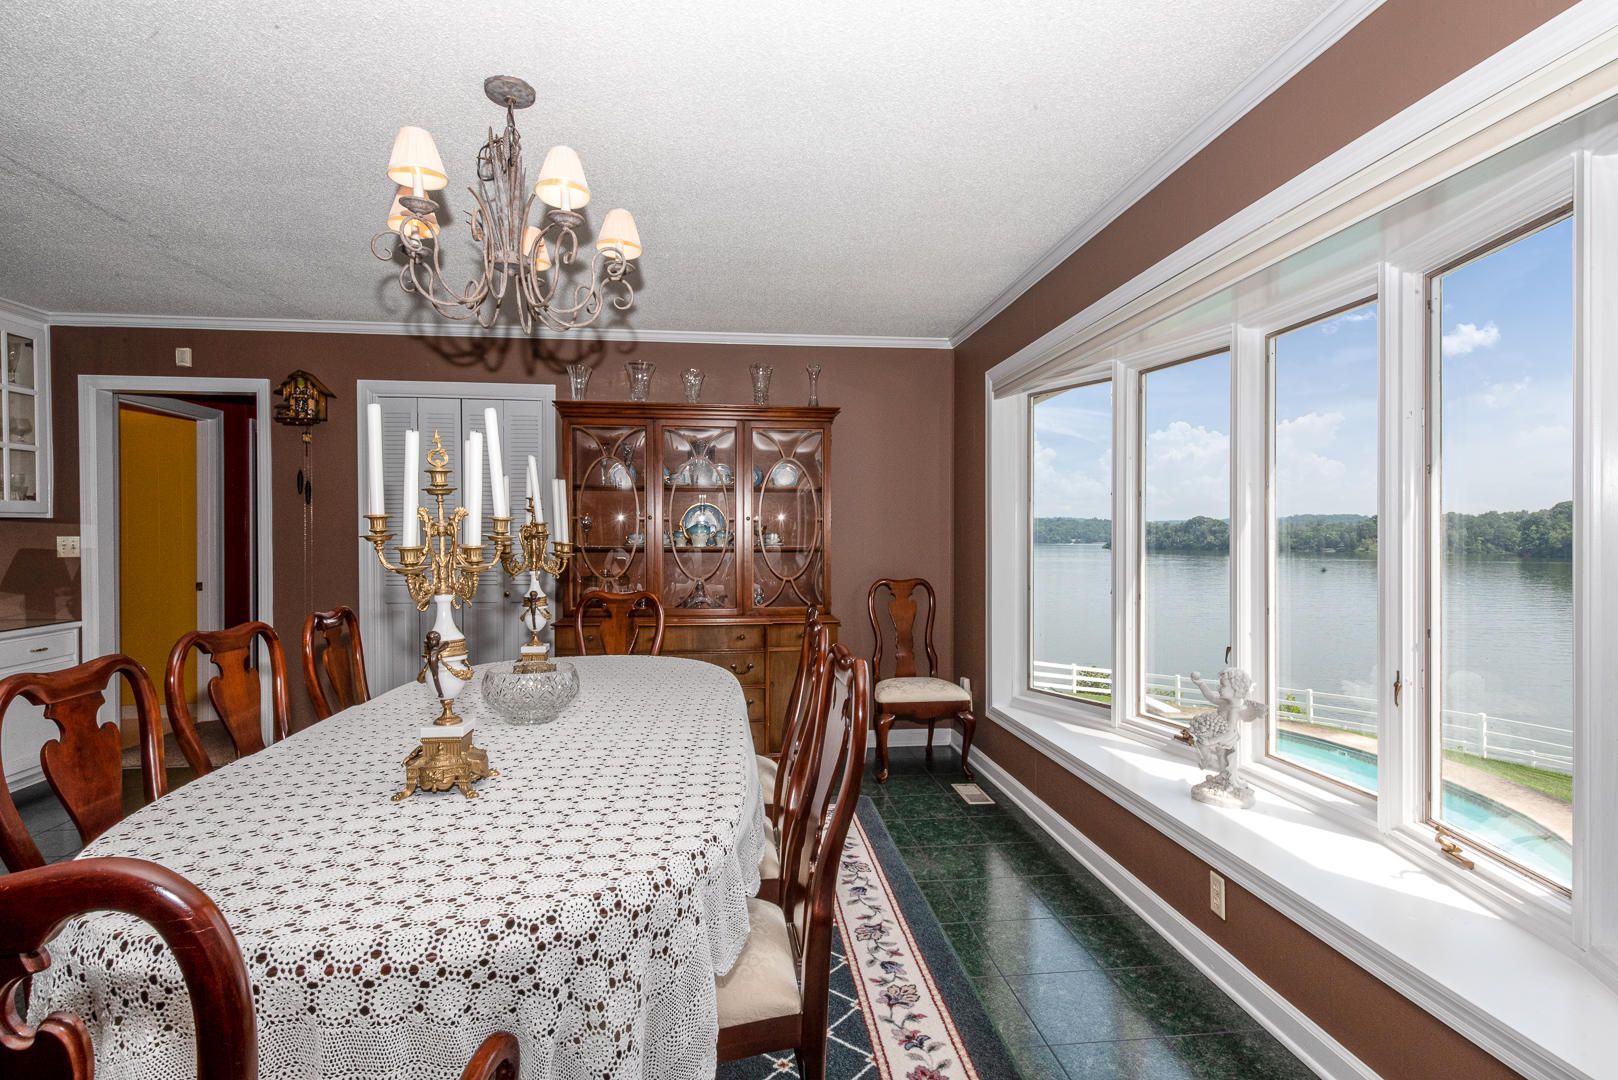 Dining area bay window with lake view